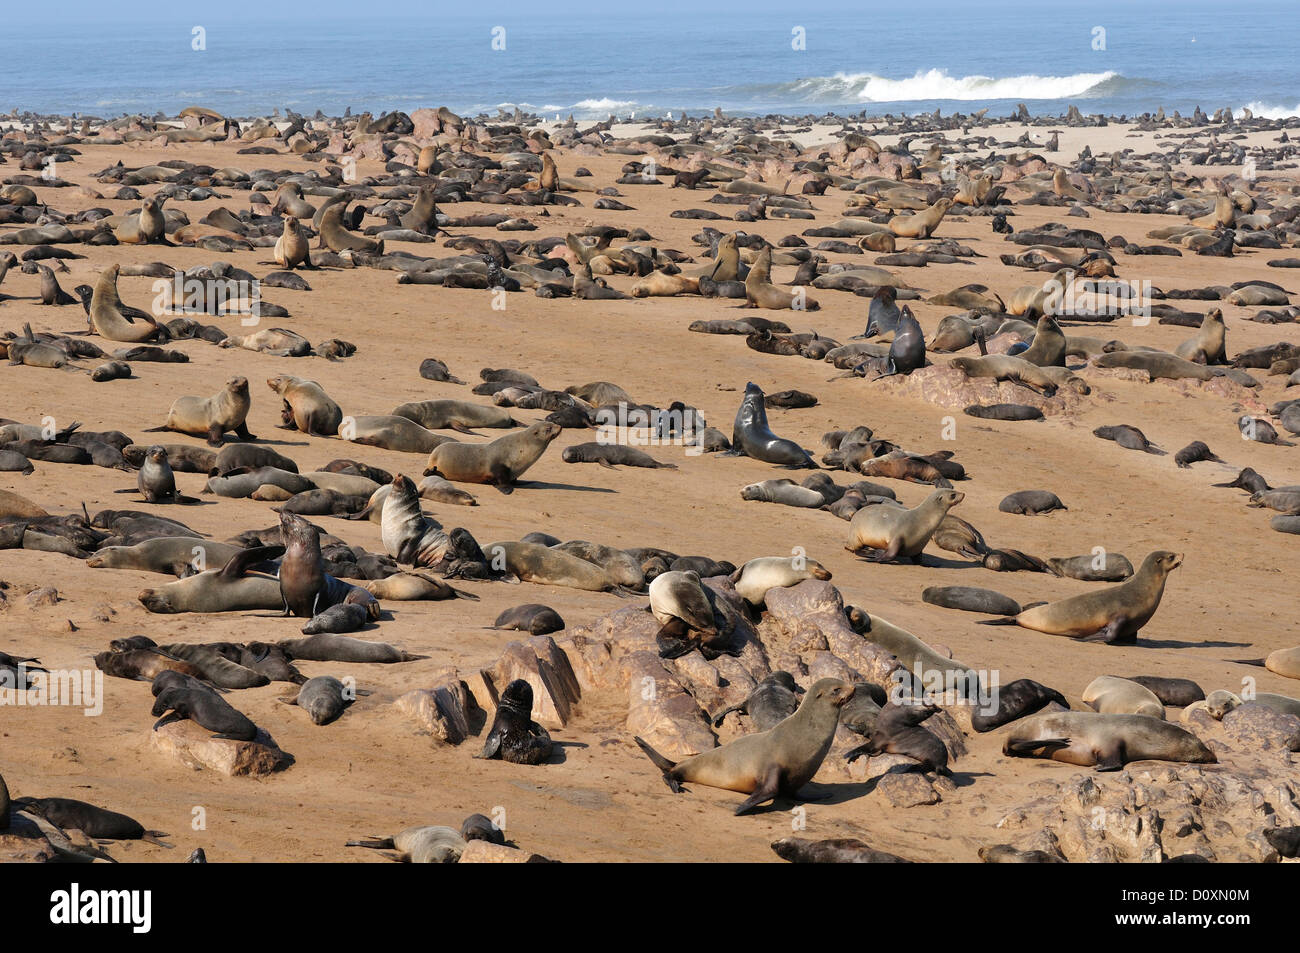 Namibia Skeleton Coast Tours